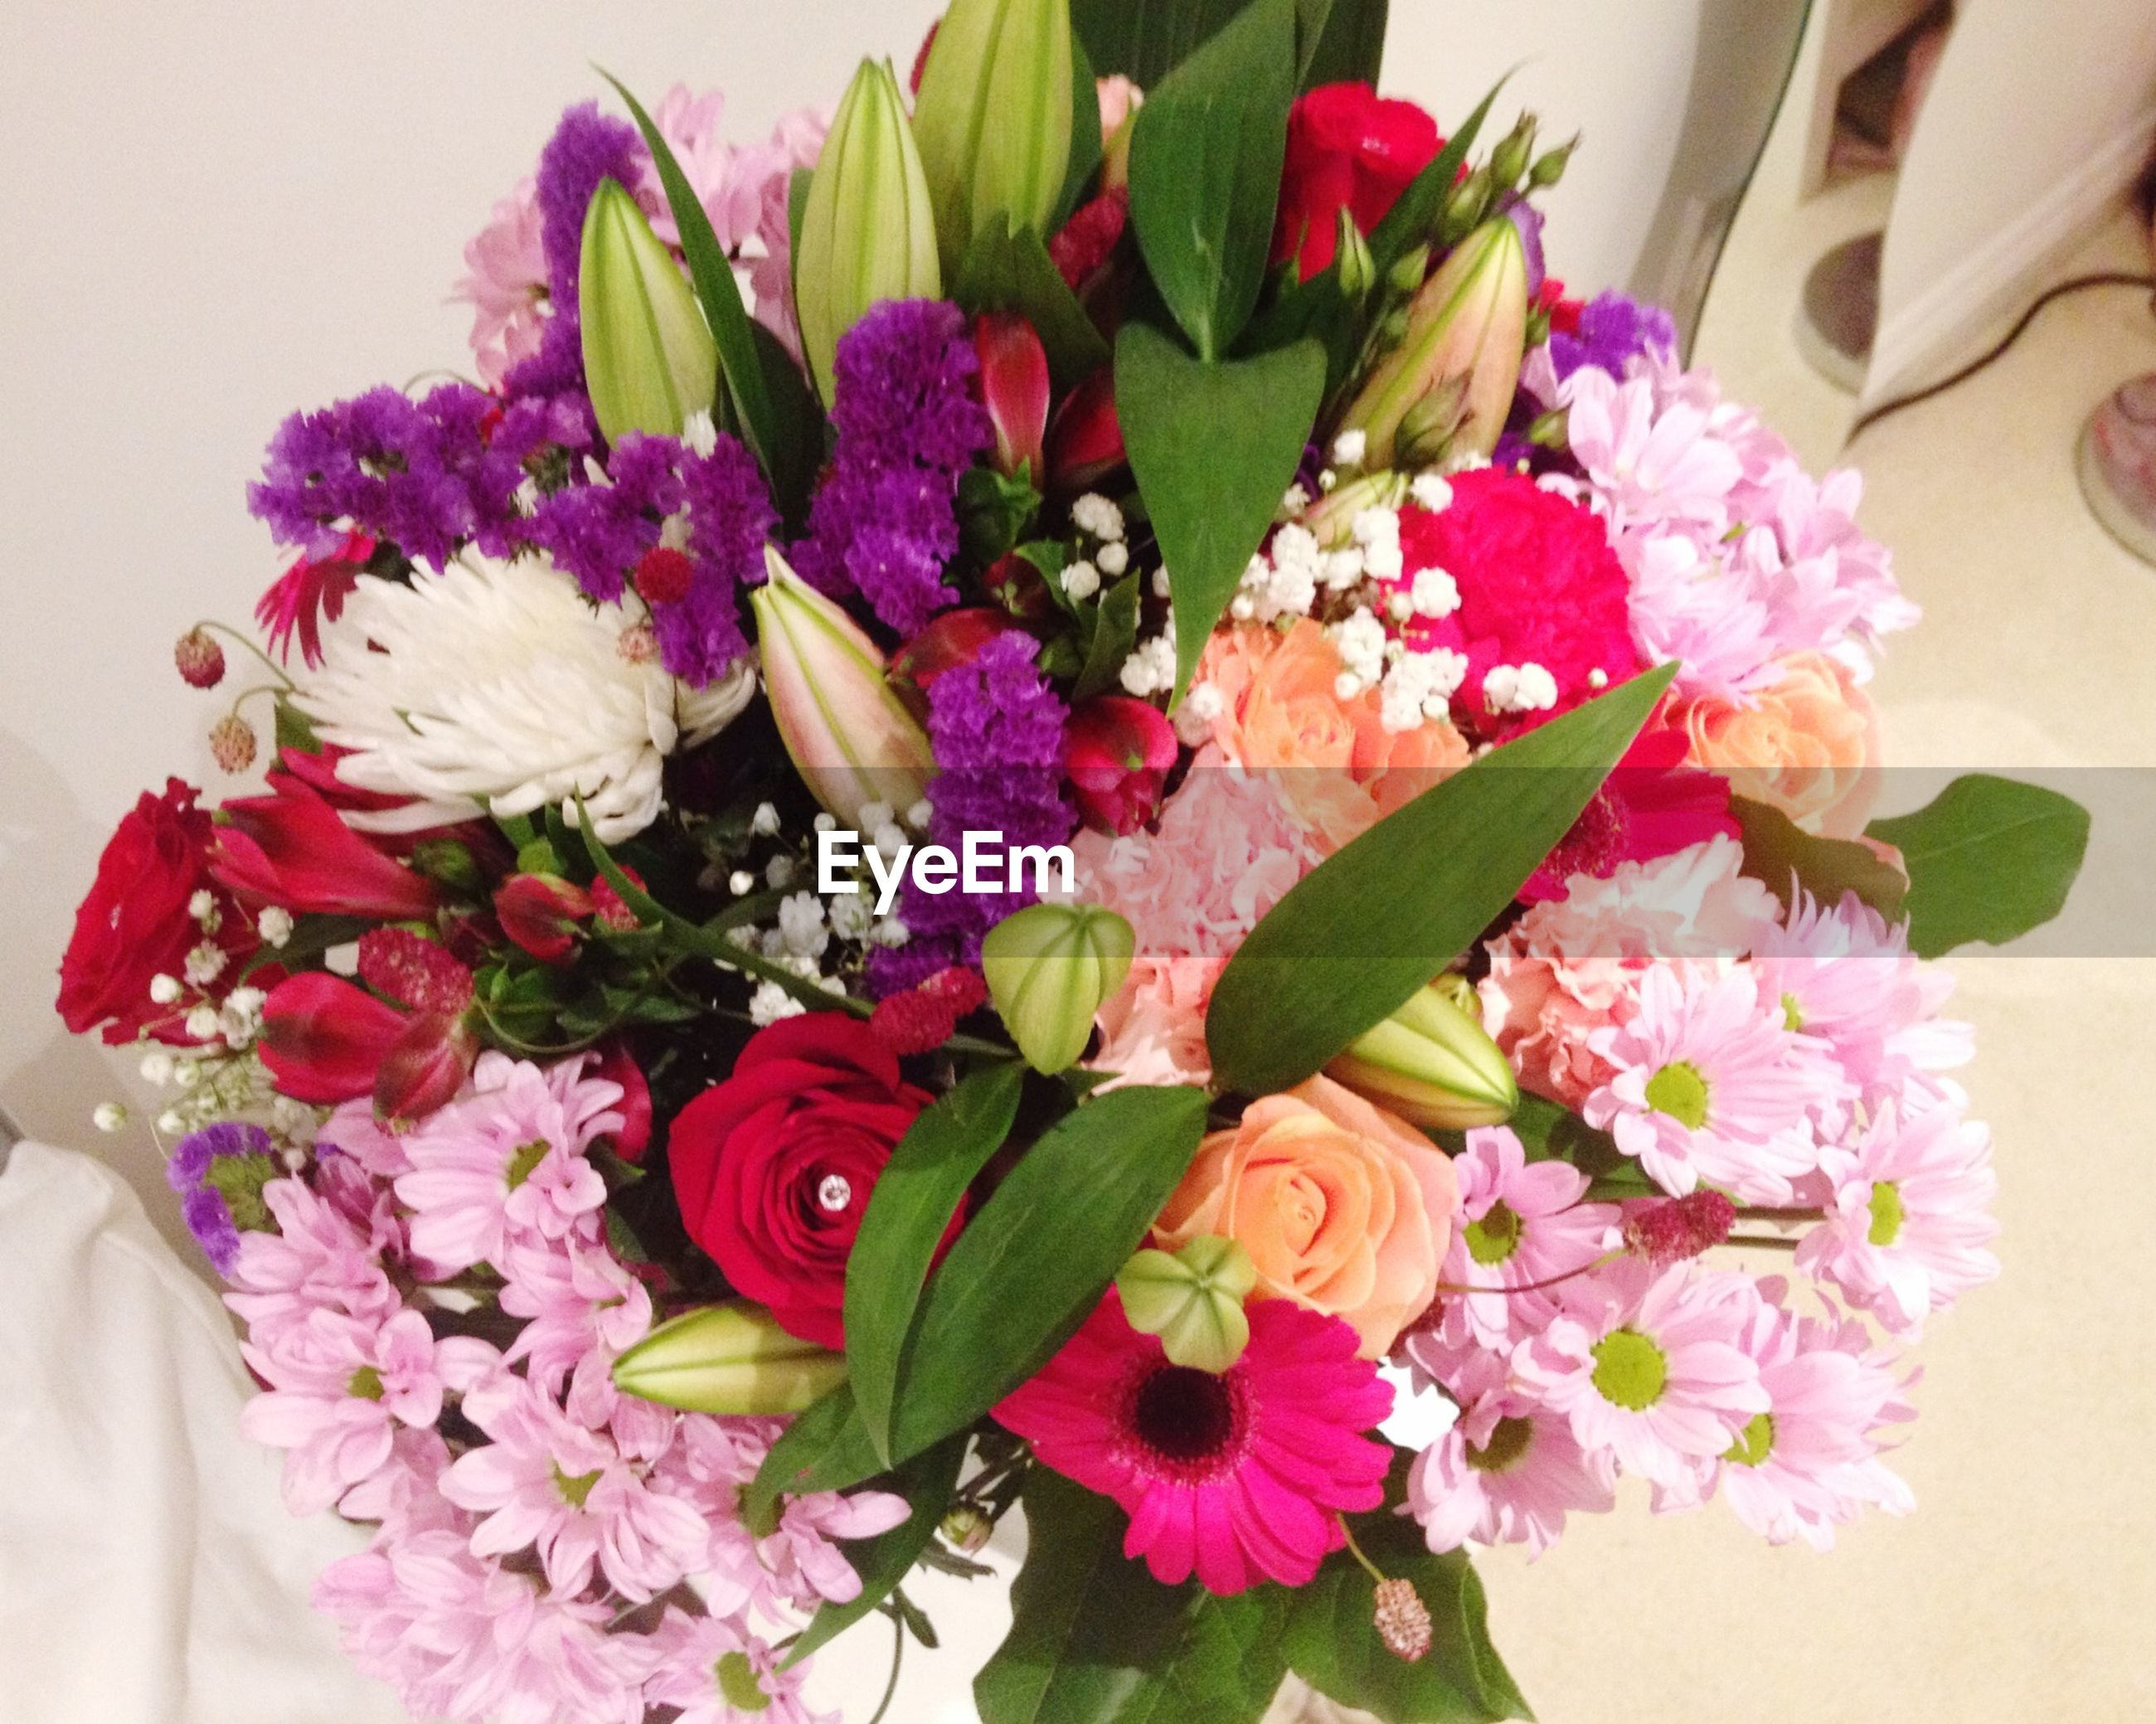 flower, freshness, petal, fragility, indoors, flower head, bouquet, bunch of flowers, beauty in nature, vase, growth, flower arrangement, leaf, close-up, nature, pink color, plant, decoration, multi colored, high angle view